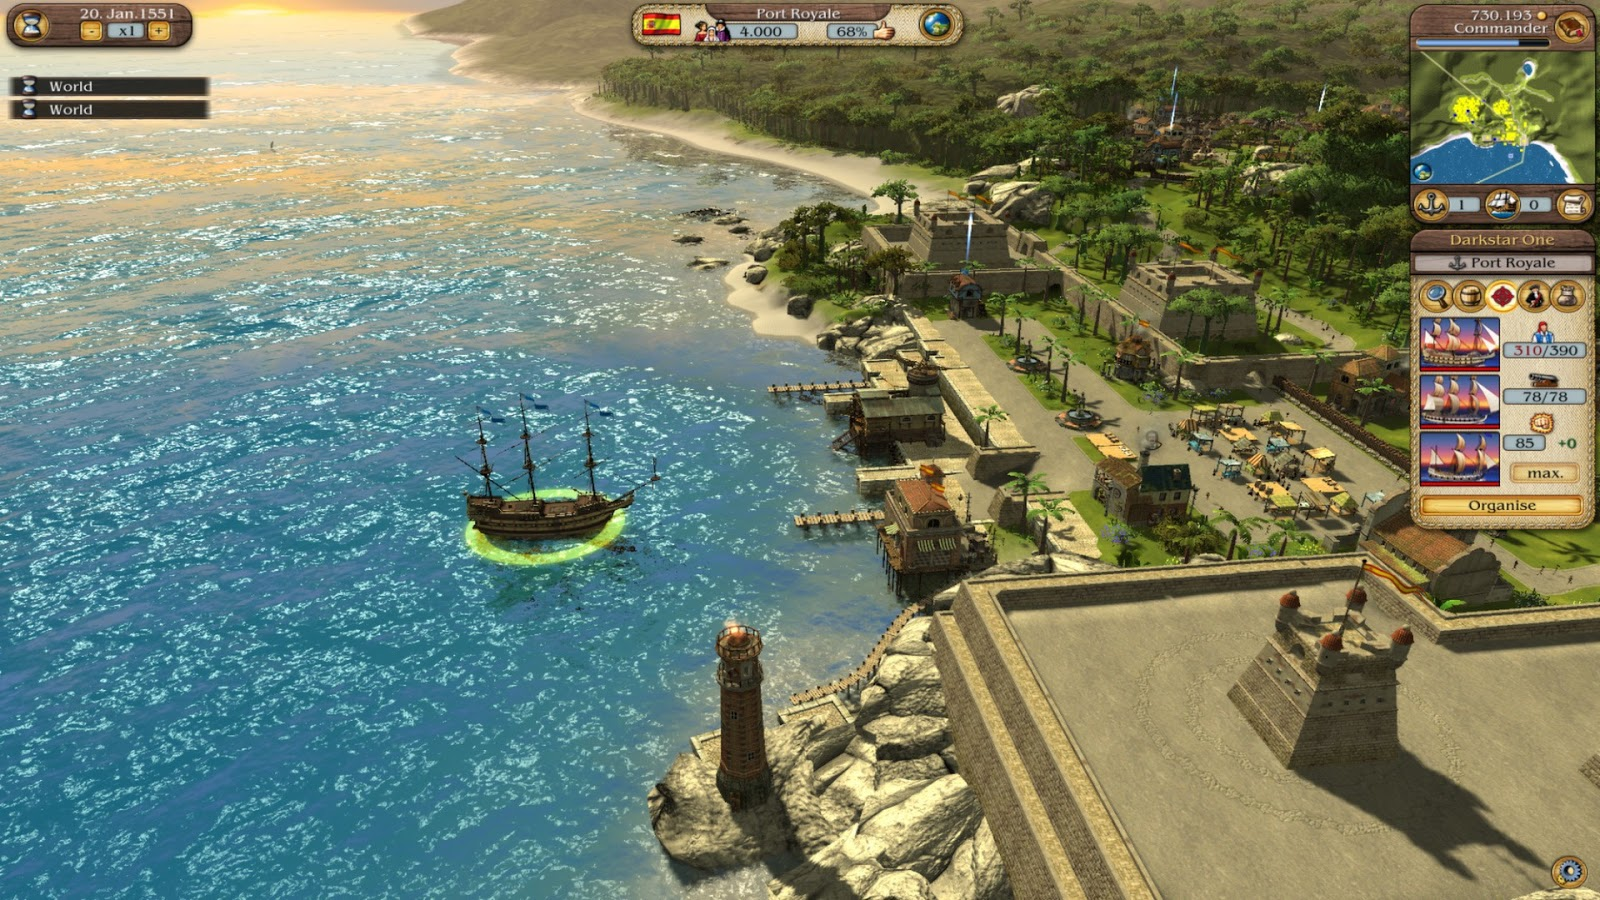 port royale 3 free download pc game free pc game full